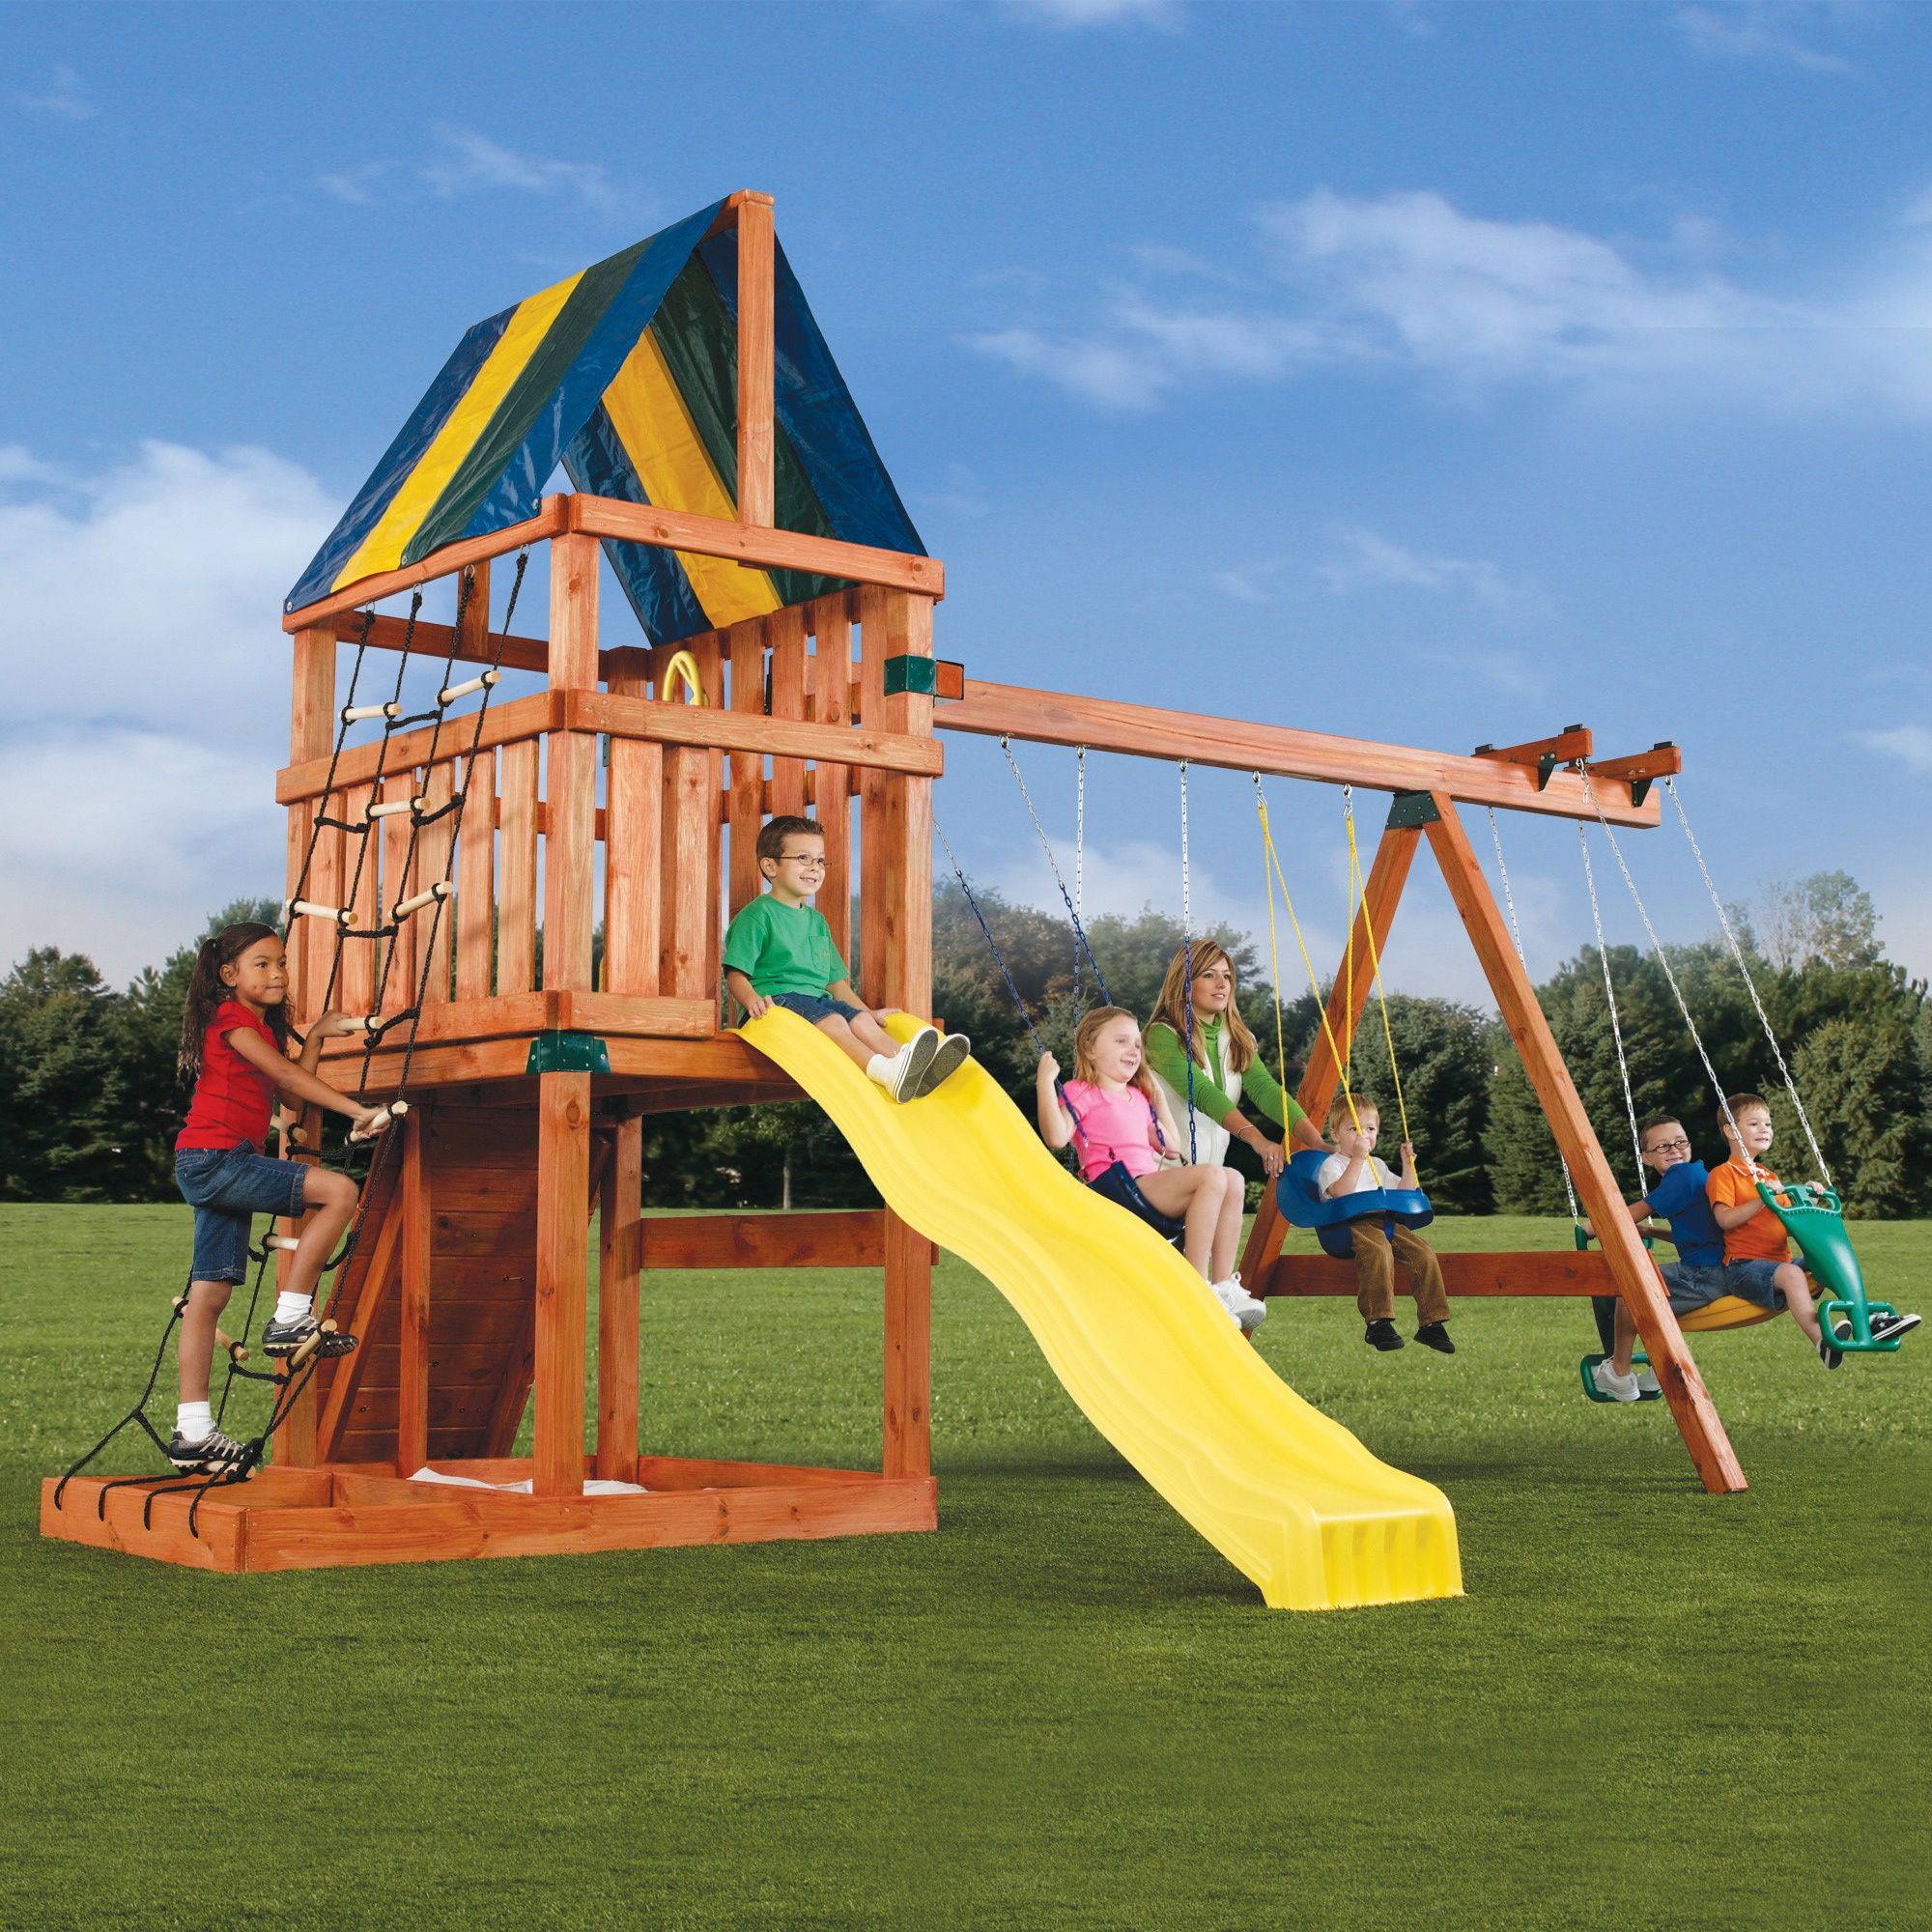 sun what sets swing backyard sweet at set wooden or playsets discovery cheerful swingset shop wood intriguing outdoor ga paradise palace gorilla on kids famed playset is